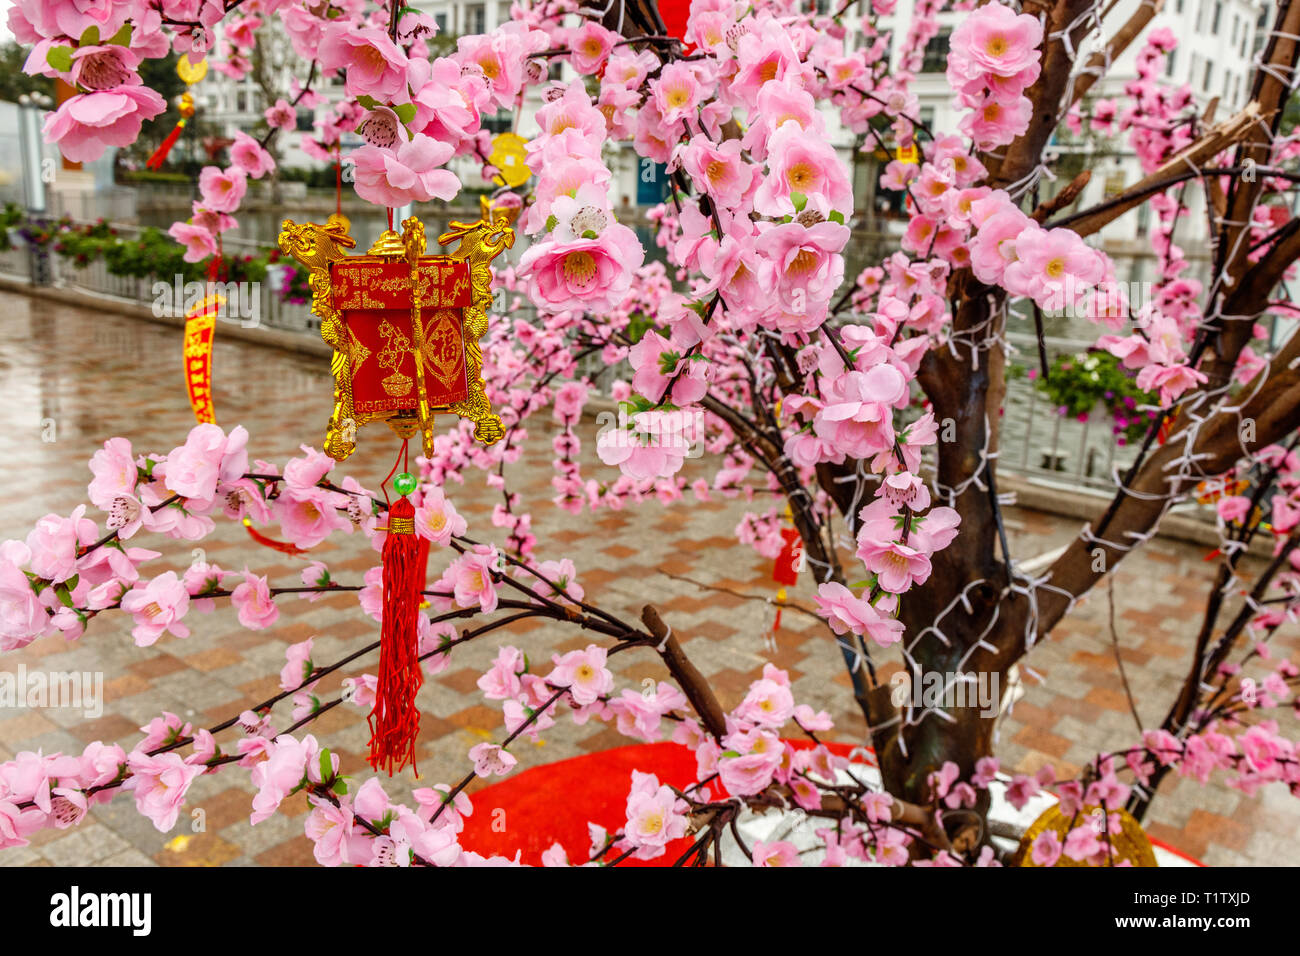 Pink peach flowers on blooming trees on the streets for celebrating Tet, Vietnamese new year in Hanoi, Vietnam. - Stock Image